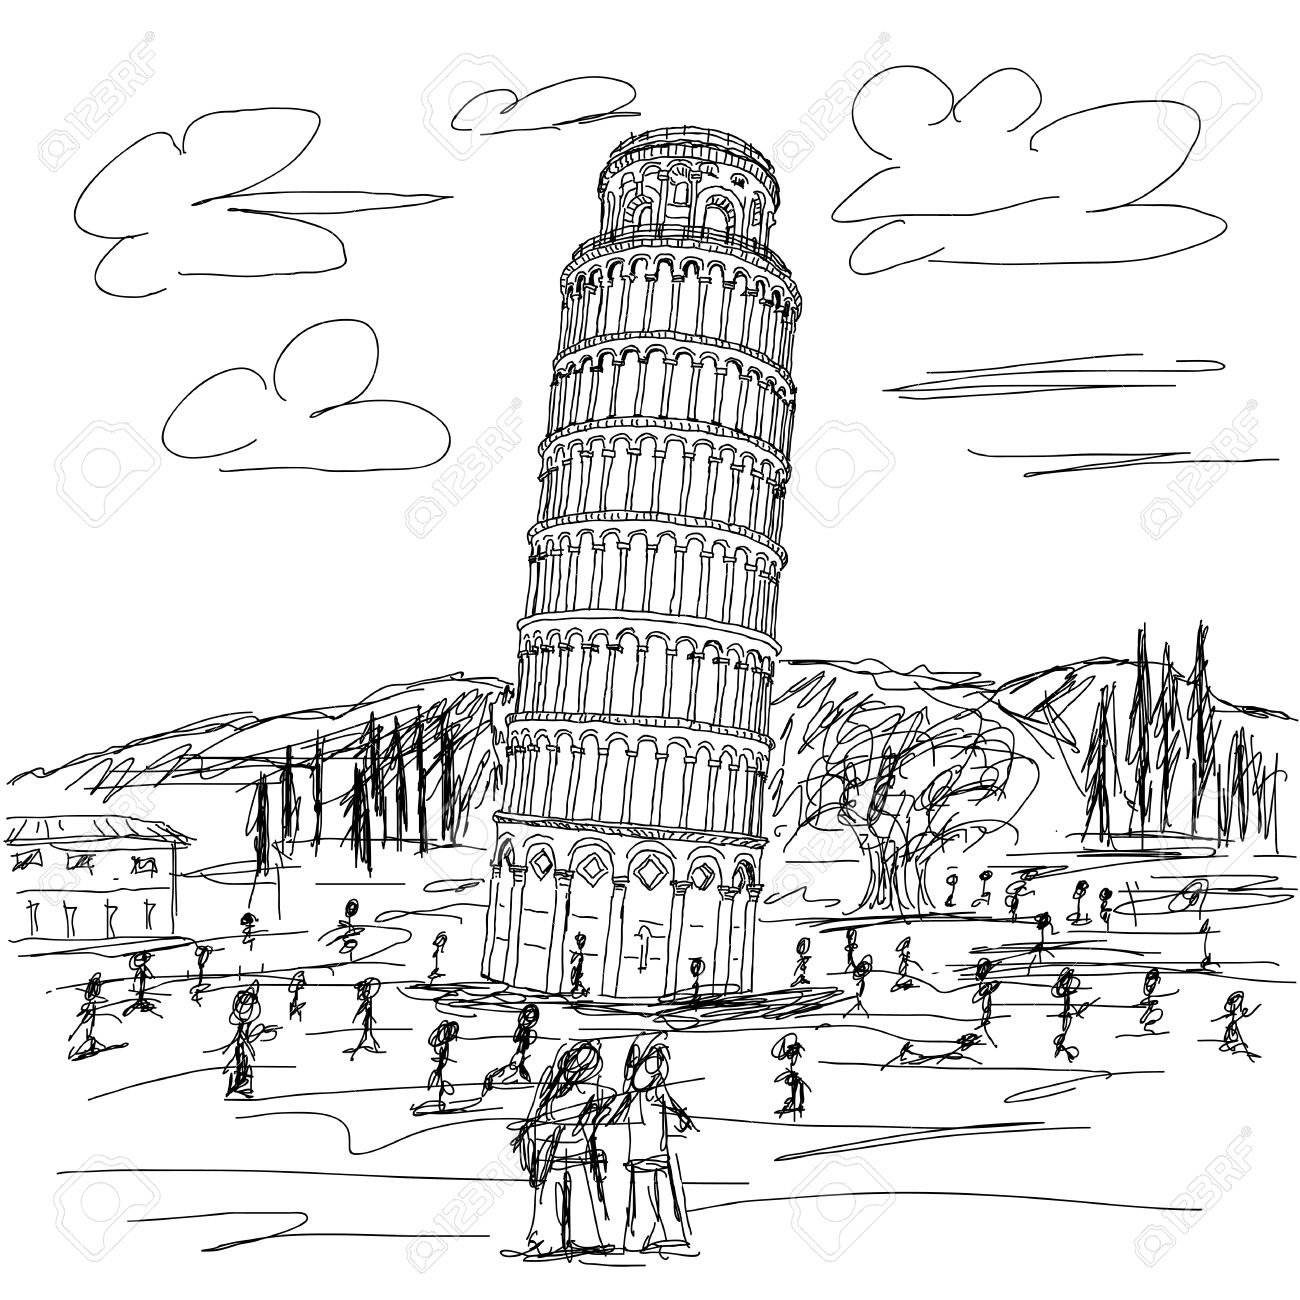 printable pictures of the leaning tower of pisa the tower of pisa coloring page coloringcrewcom of leaning pictures pisa of tower the printable